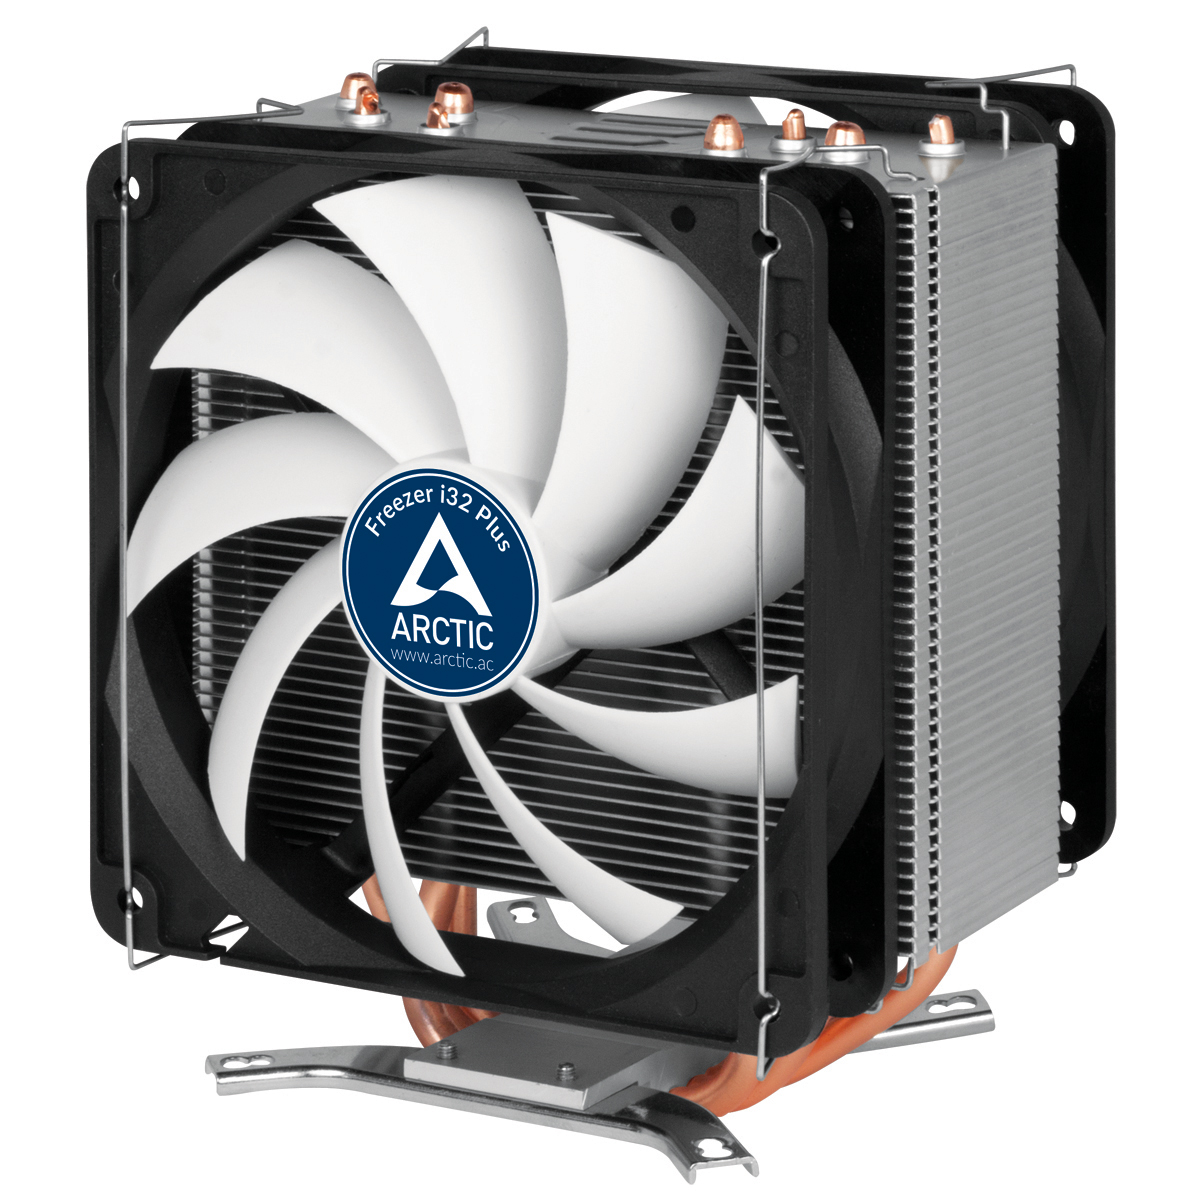 ARCTIC Freezer i32 Plus – CPU Cooler for Intel Socket 2011(-v3) /1150/1151/1155/1156/2066, direct touch technology